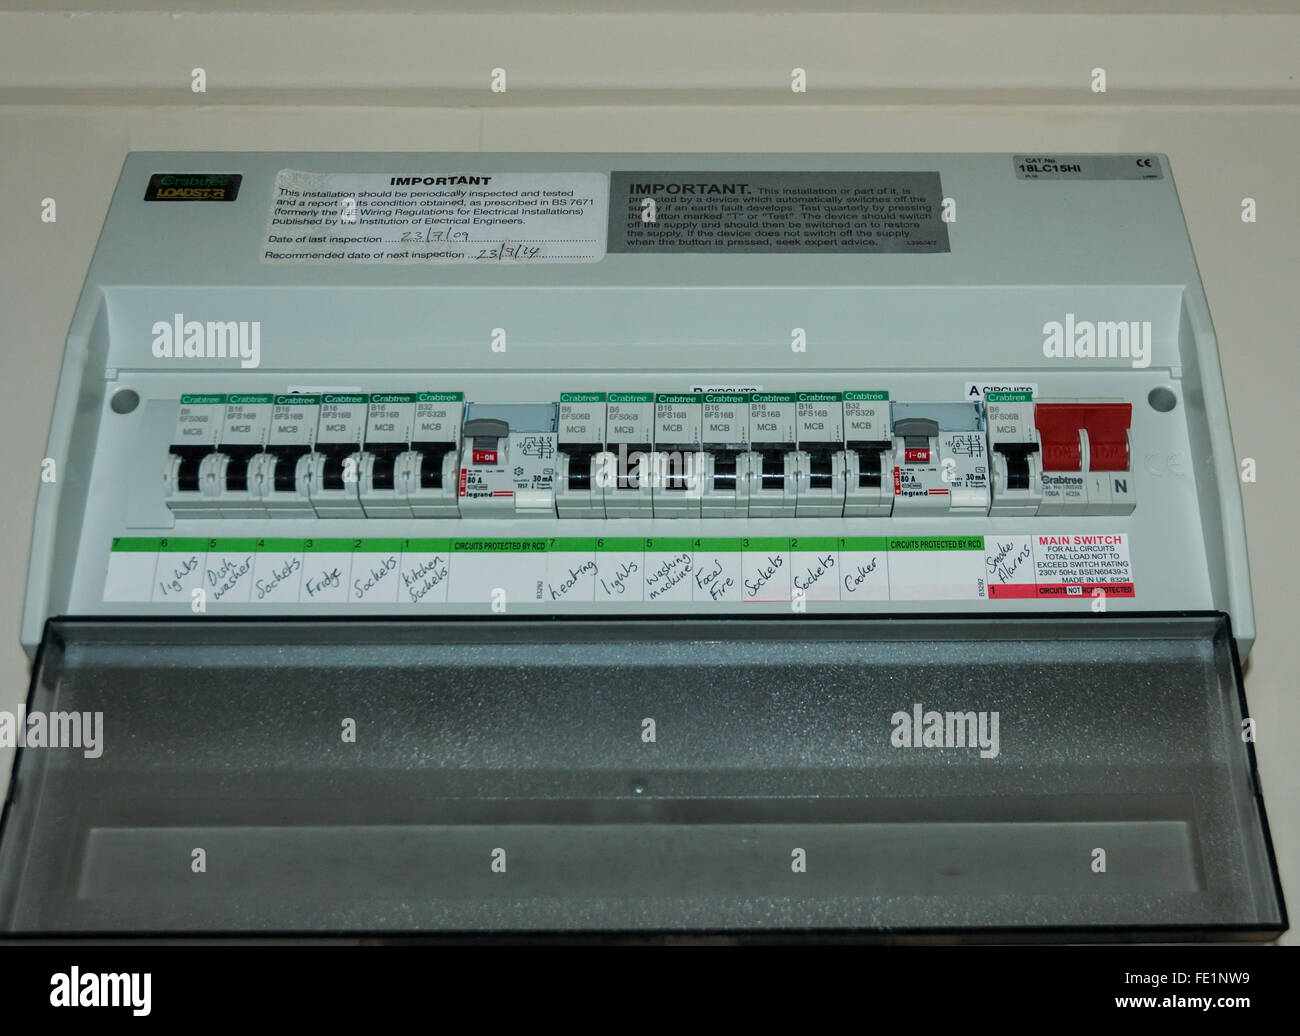 an electricity fuse box stock photo 94696149 alamy rh alamy com fuse box electricity fuse box electrical conn automotive